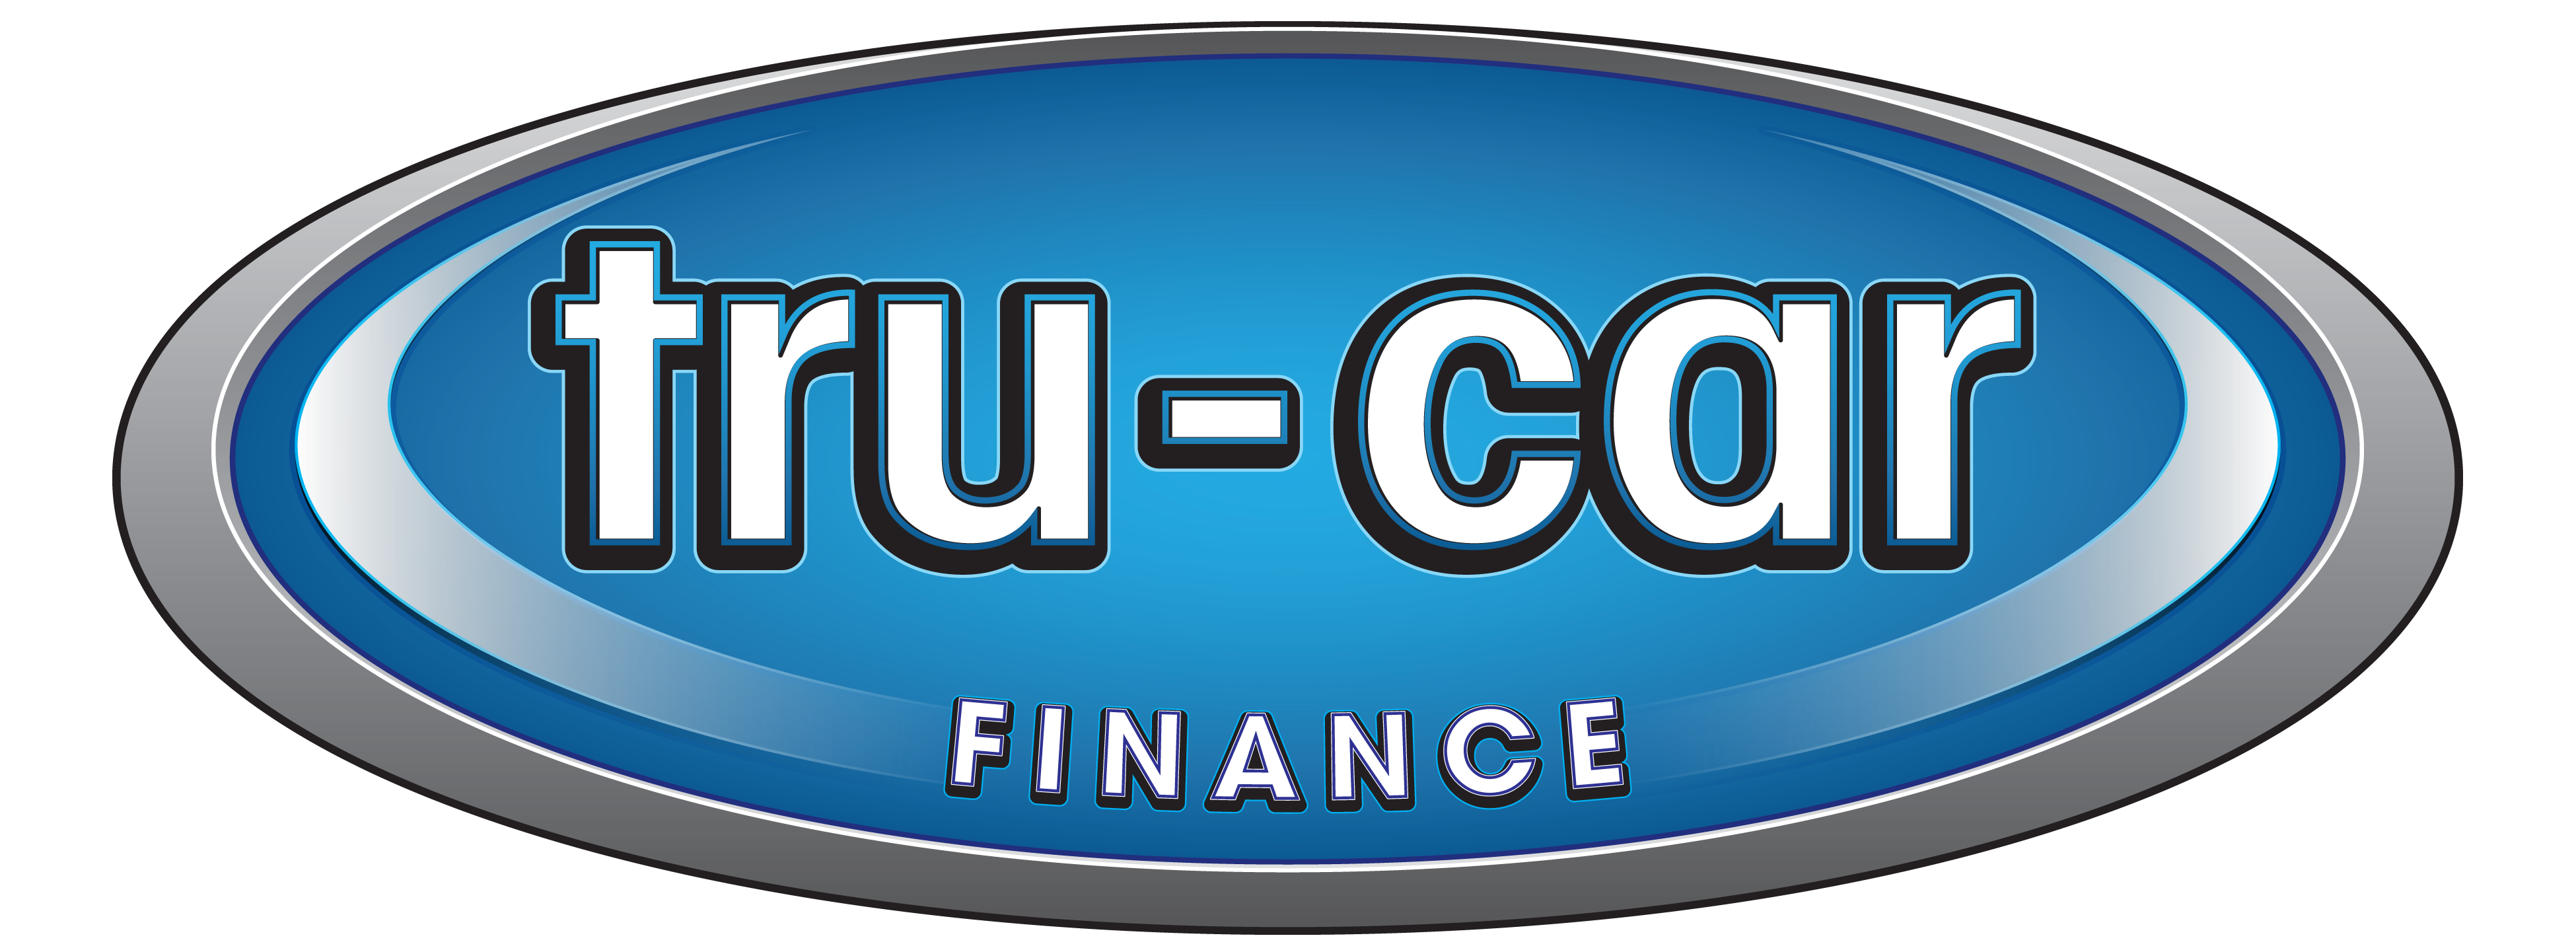 Tru-Car Finance